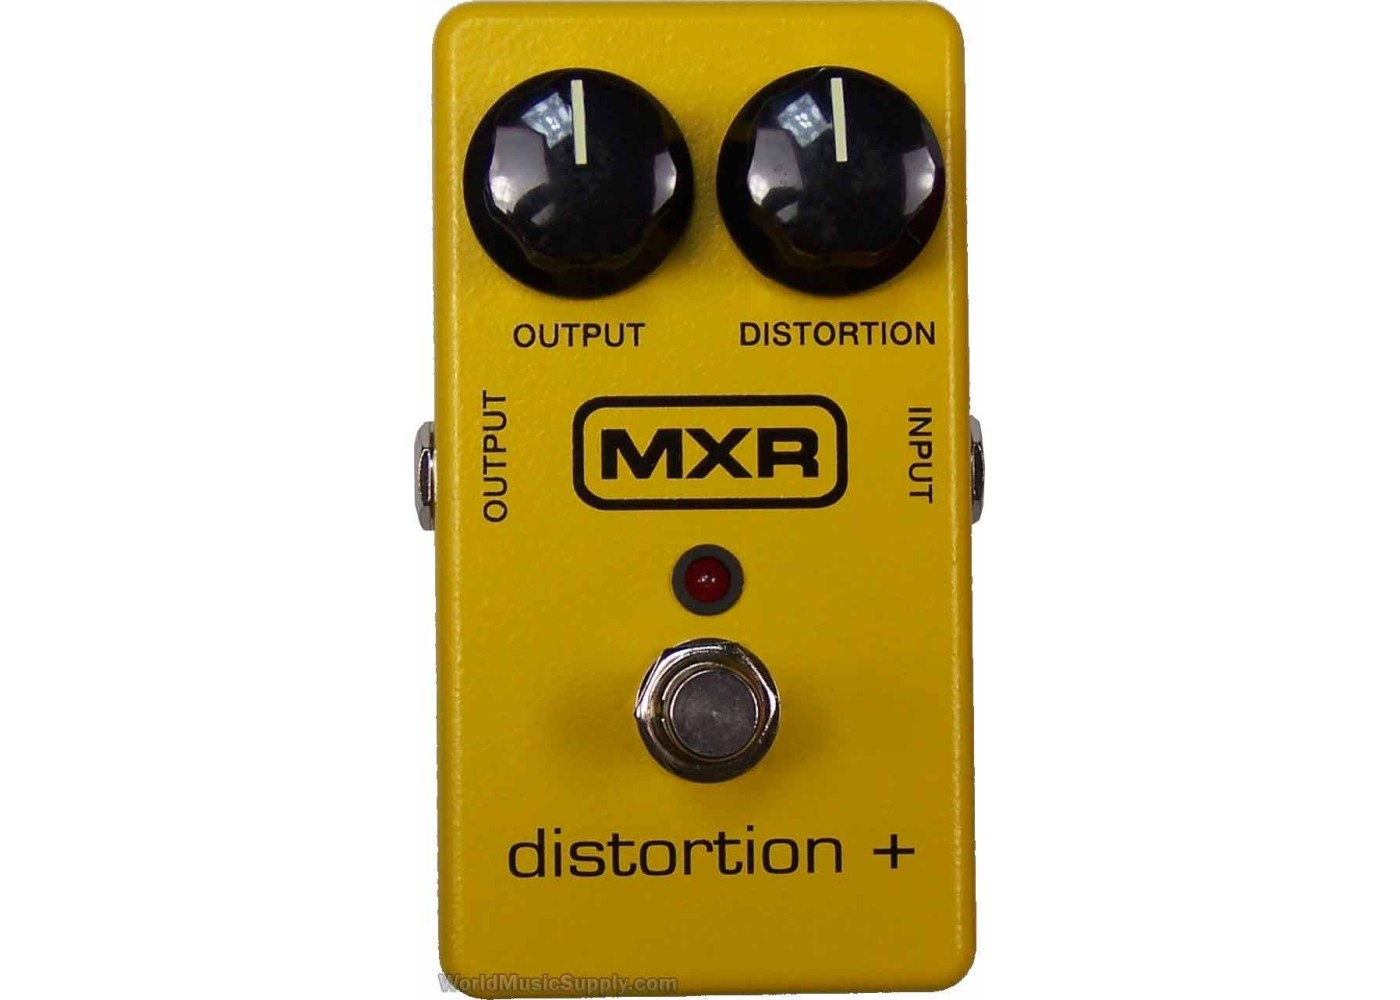 dating mxr distortion plus English: an original mxr innovations distortion plus pedal from 1979, block logo, without led and battery-only operation (no ac adapter) date, 29 may 2014, 21: 21:32 source, own work author, tpeck111 licensing[edit] i, the copyright holder of this work, hereby publish it under the following license: w:en:creative.